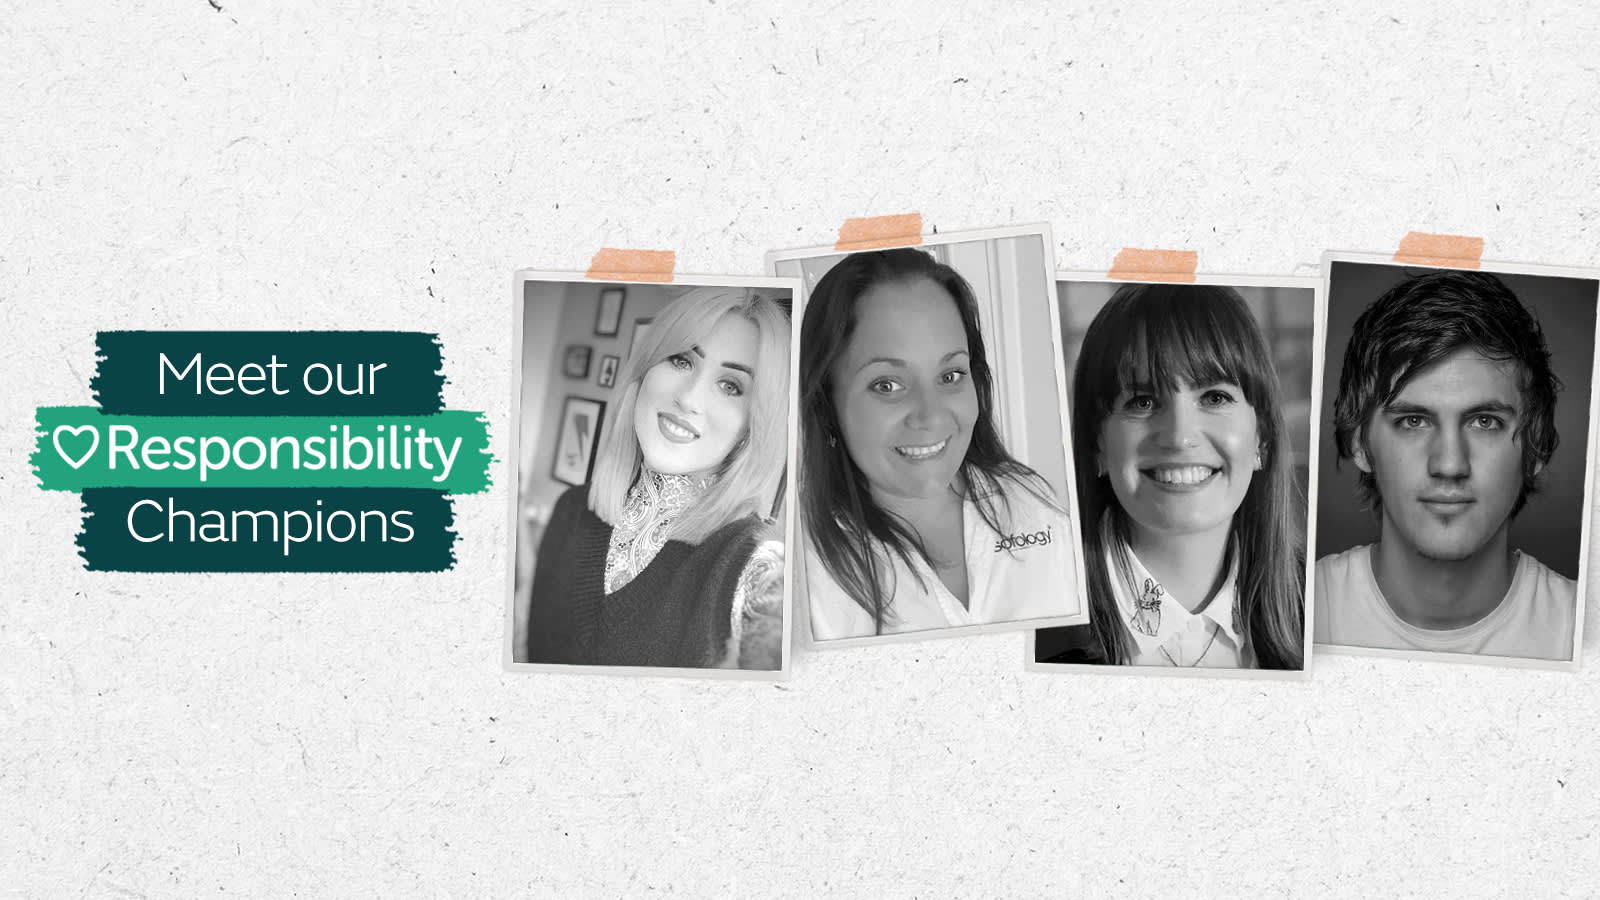 Meet our responsibility champions